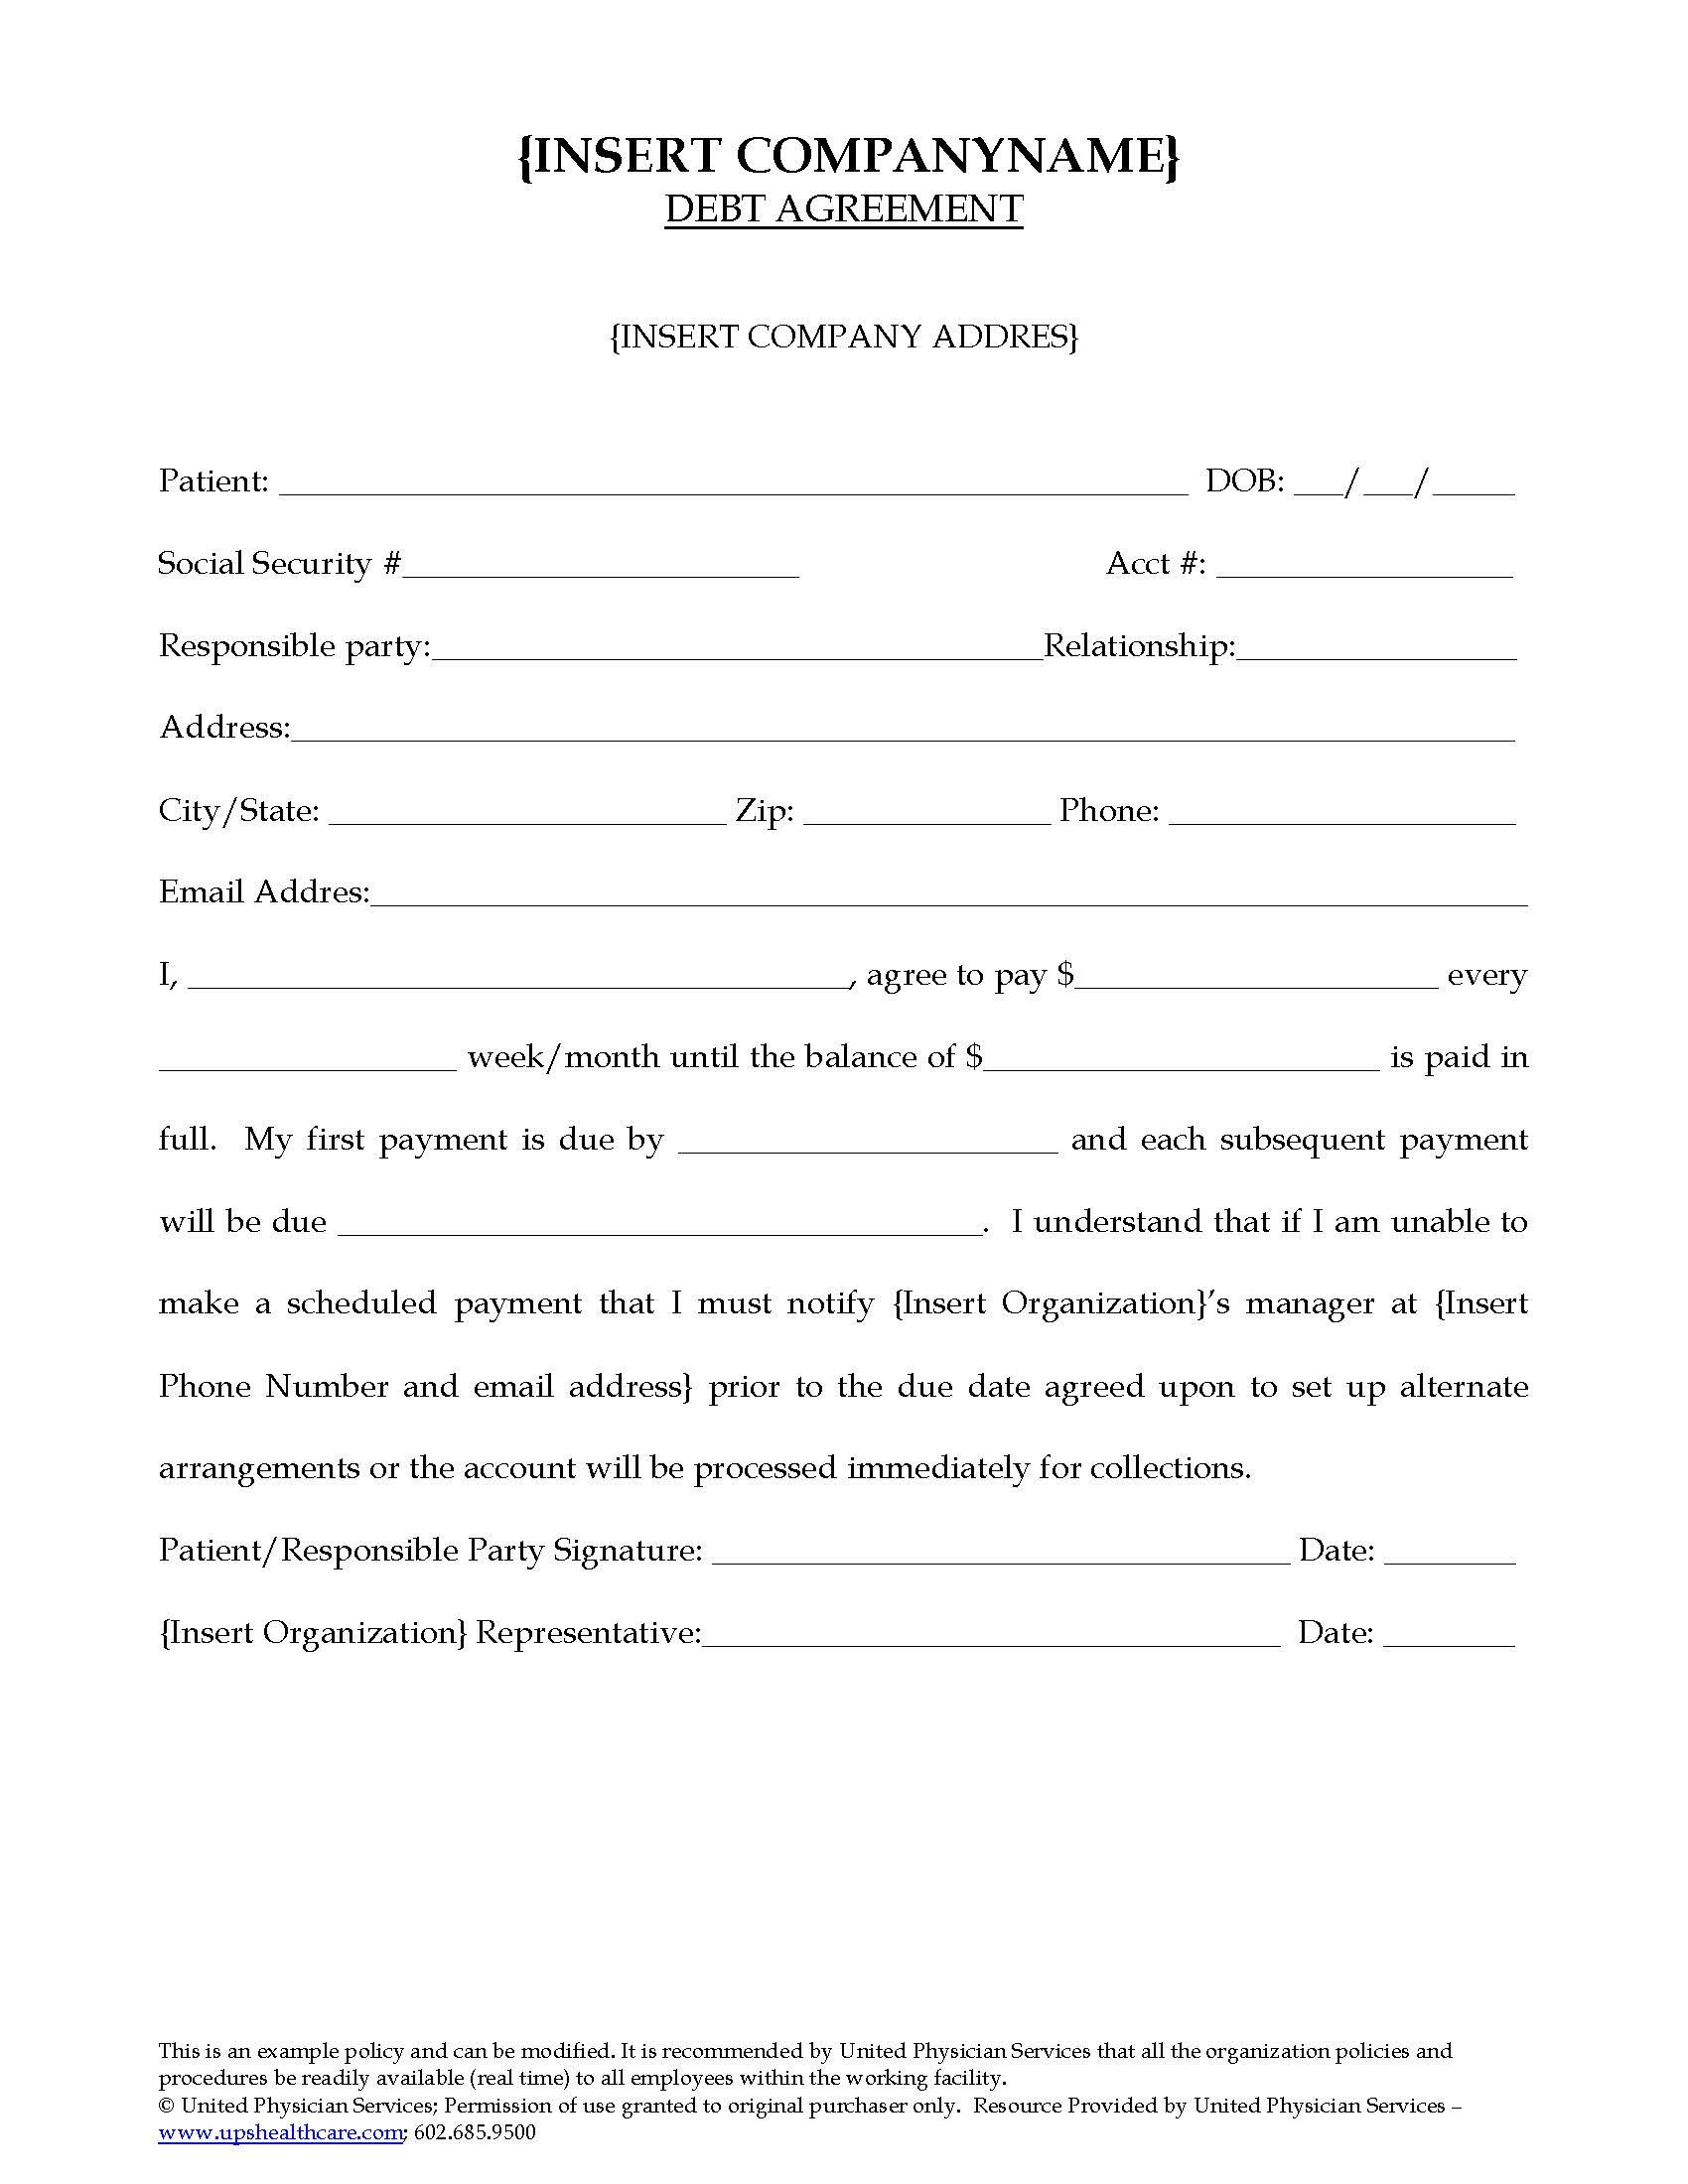 Debt Settlement Agreement Template Debt Agreement